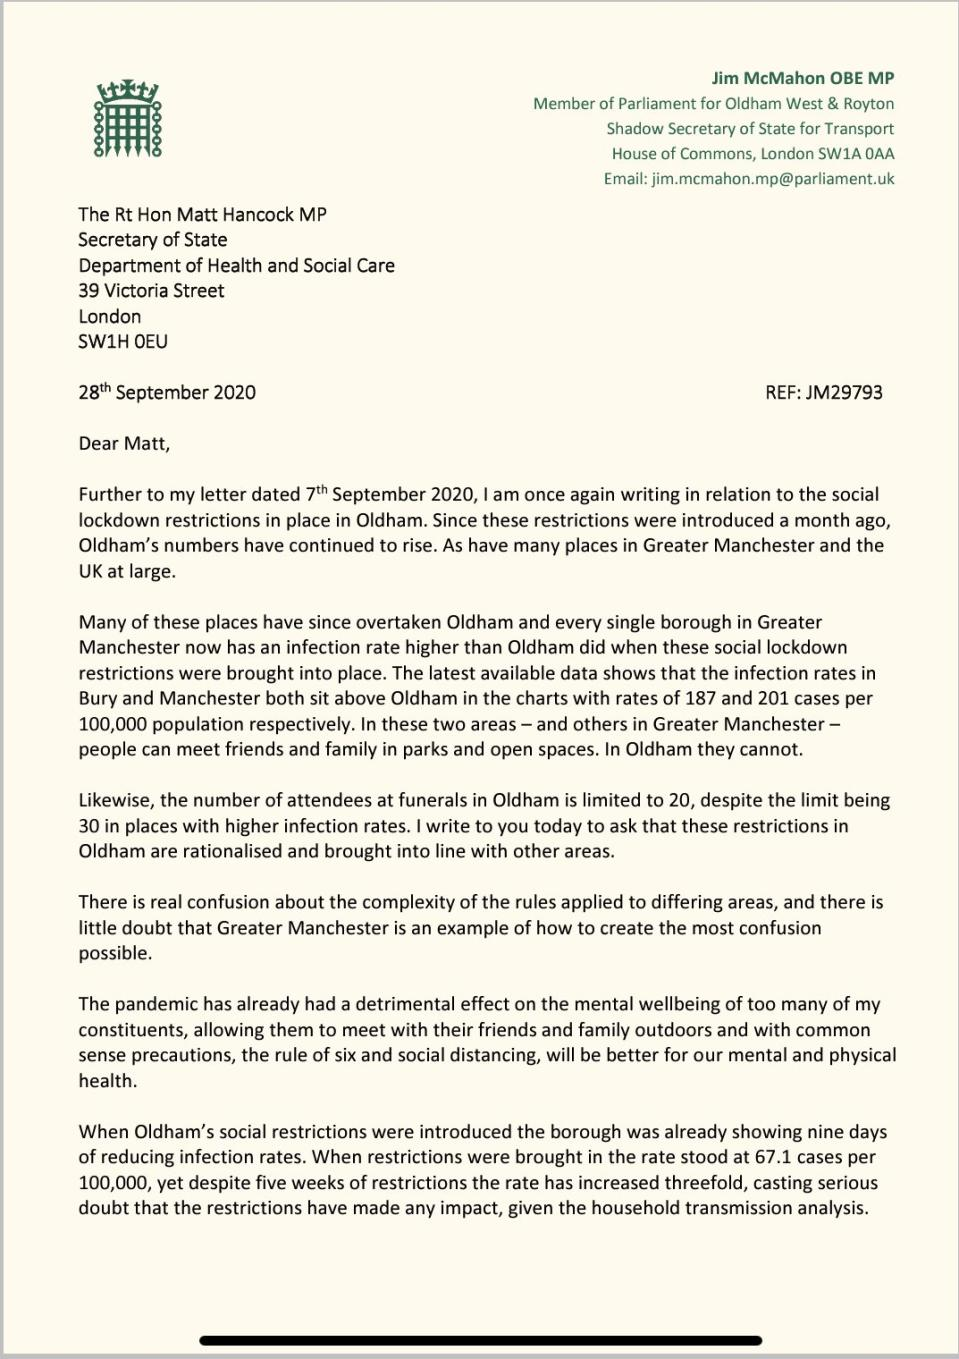 Oldham MP Jim Mc Mahon has written to Matt Hancock asking him to relax lockdown rules in line with surrounding areas